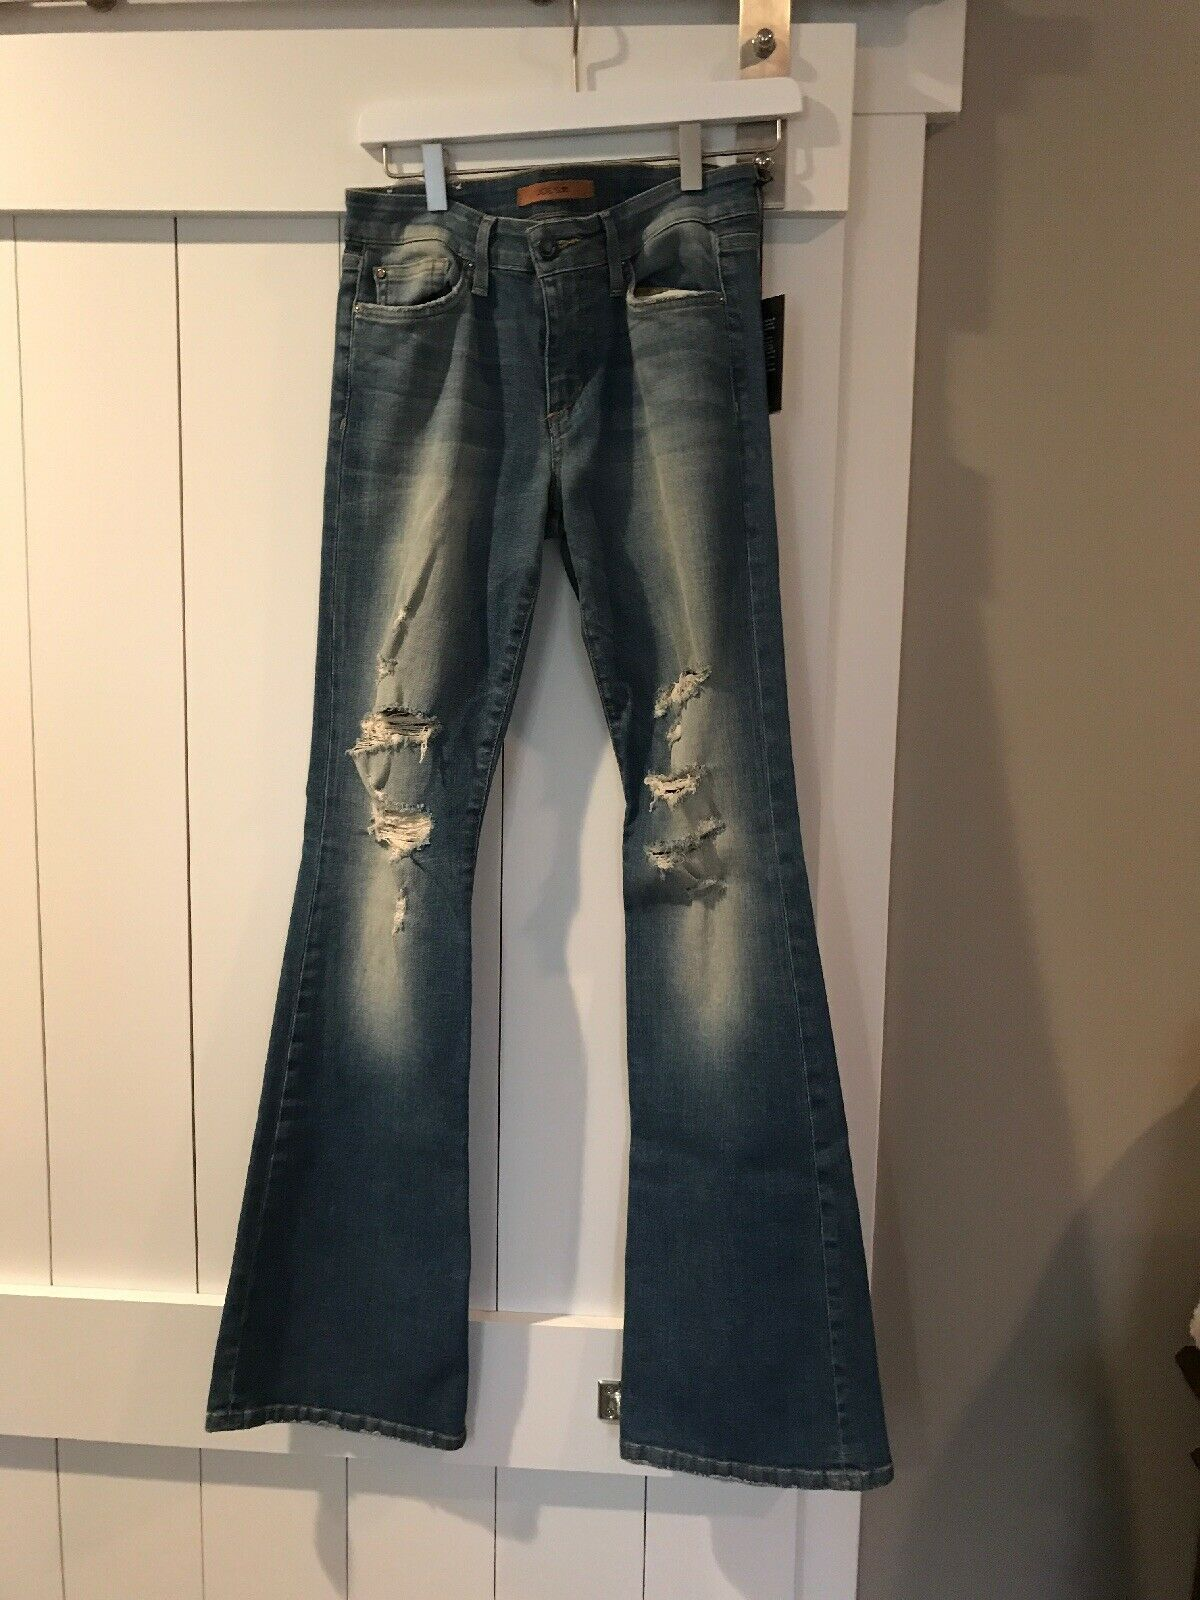 NWT JOE'S Sz29 COLLECTOR'S EDITION HIGH RISE FLARE DISTRESSED JEANS GRETCHEN